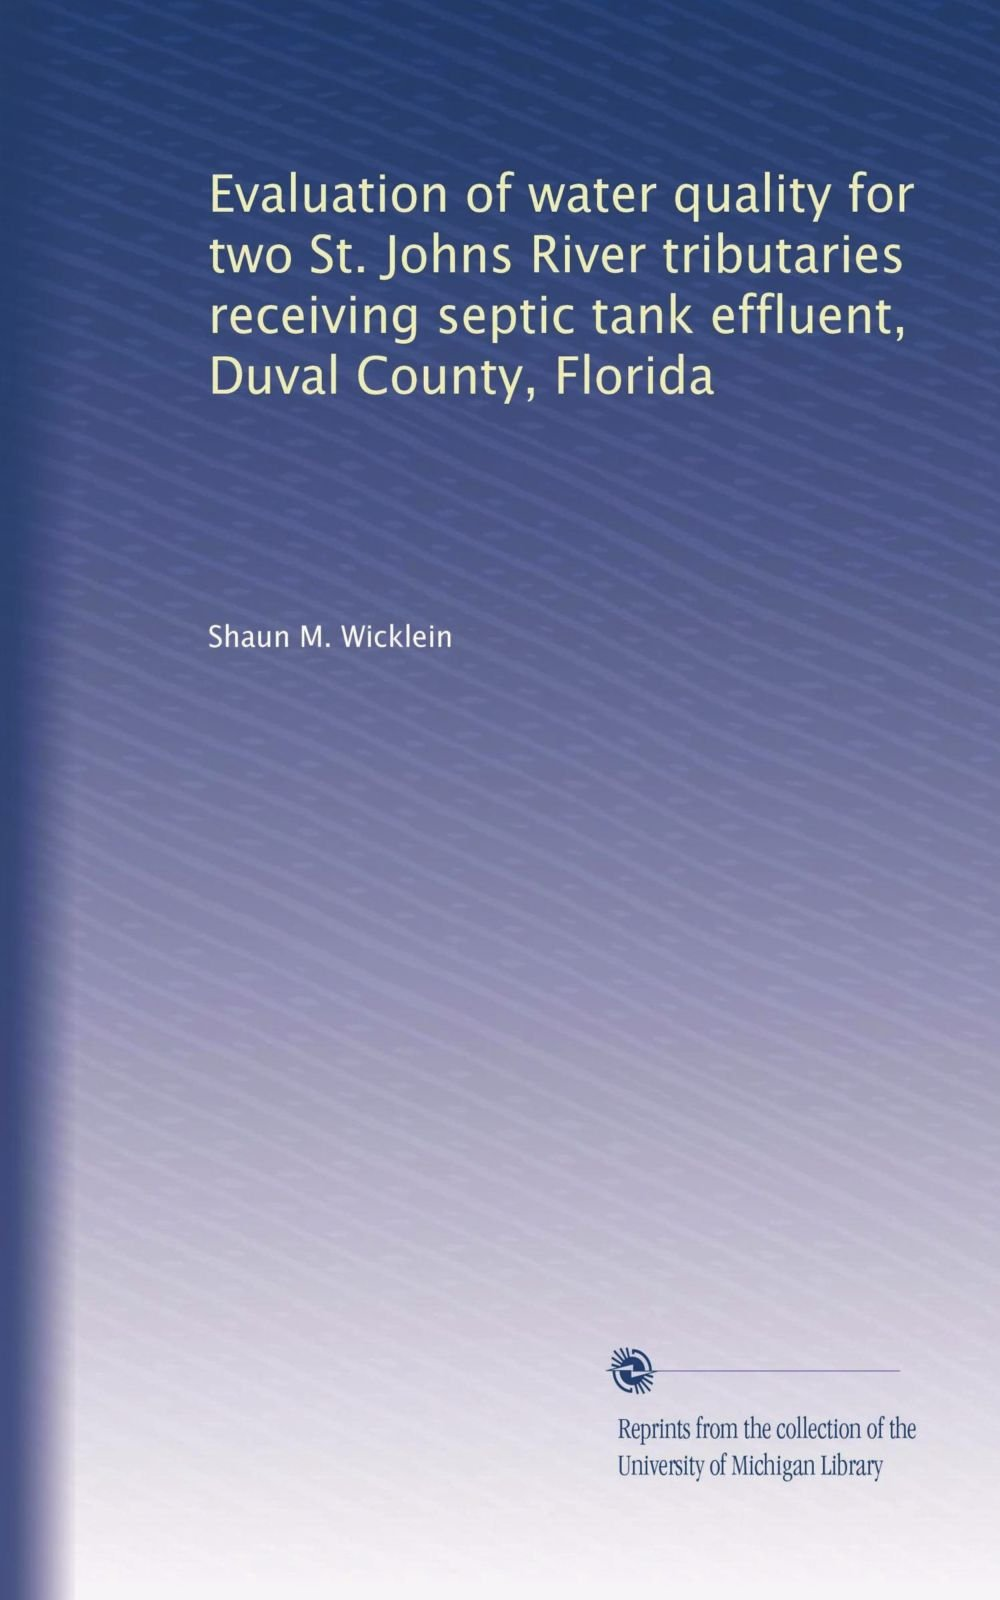 Download Evaluation of water quality for two St. Johns River tributaries receiving septic tank effluent, Duval County, Florida PDF